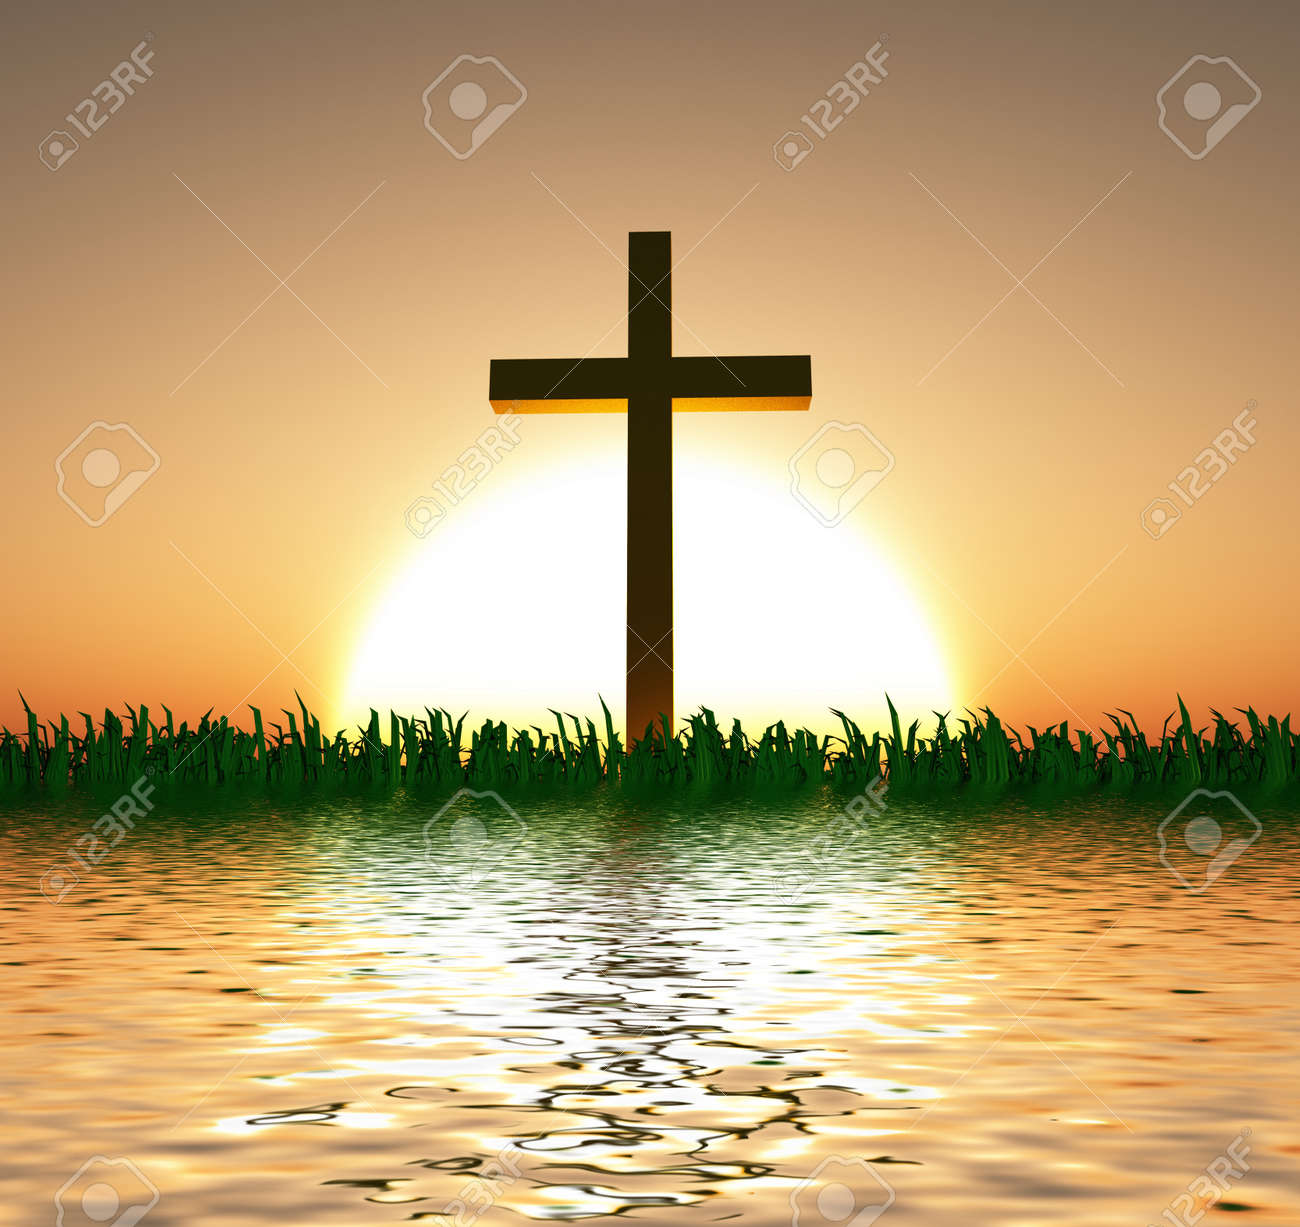 Sunset or sunrise with cross and water - 28172685